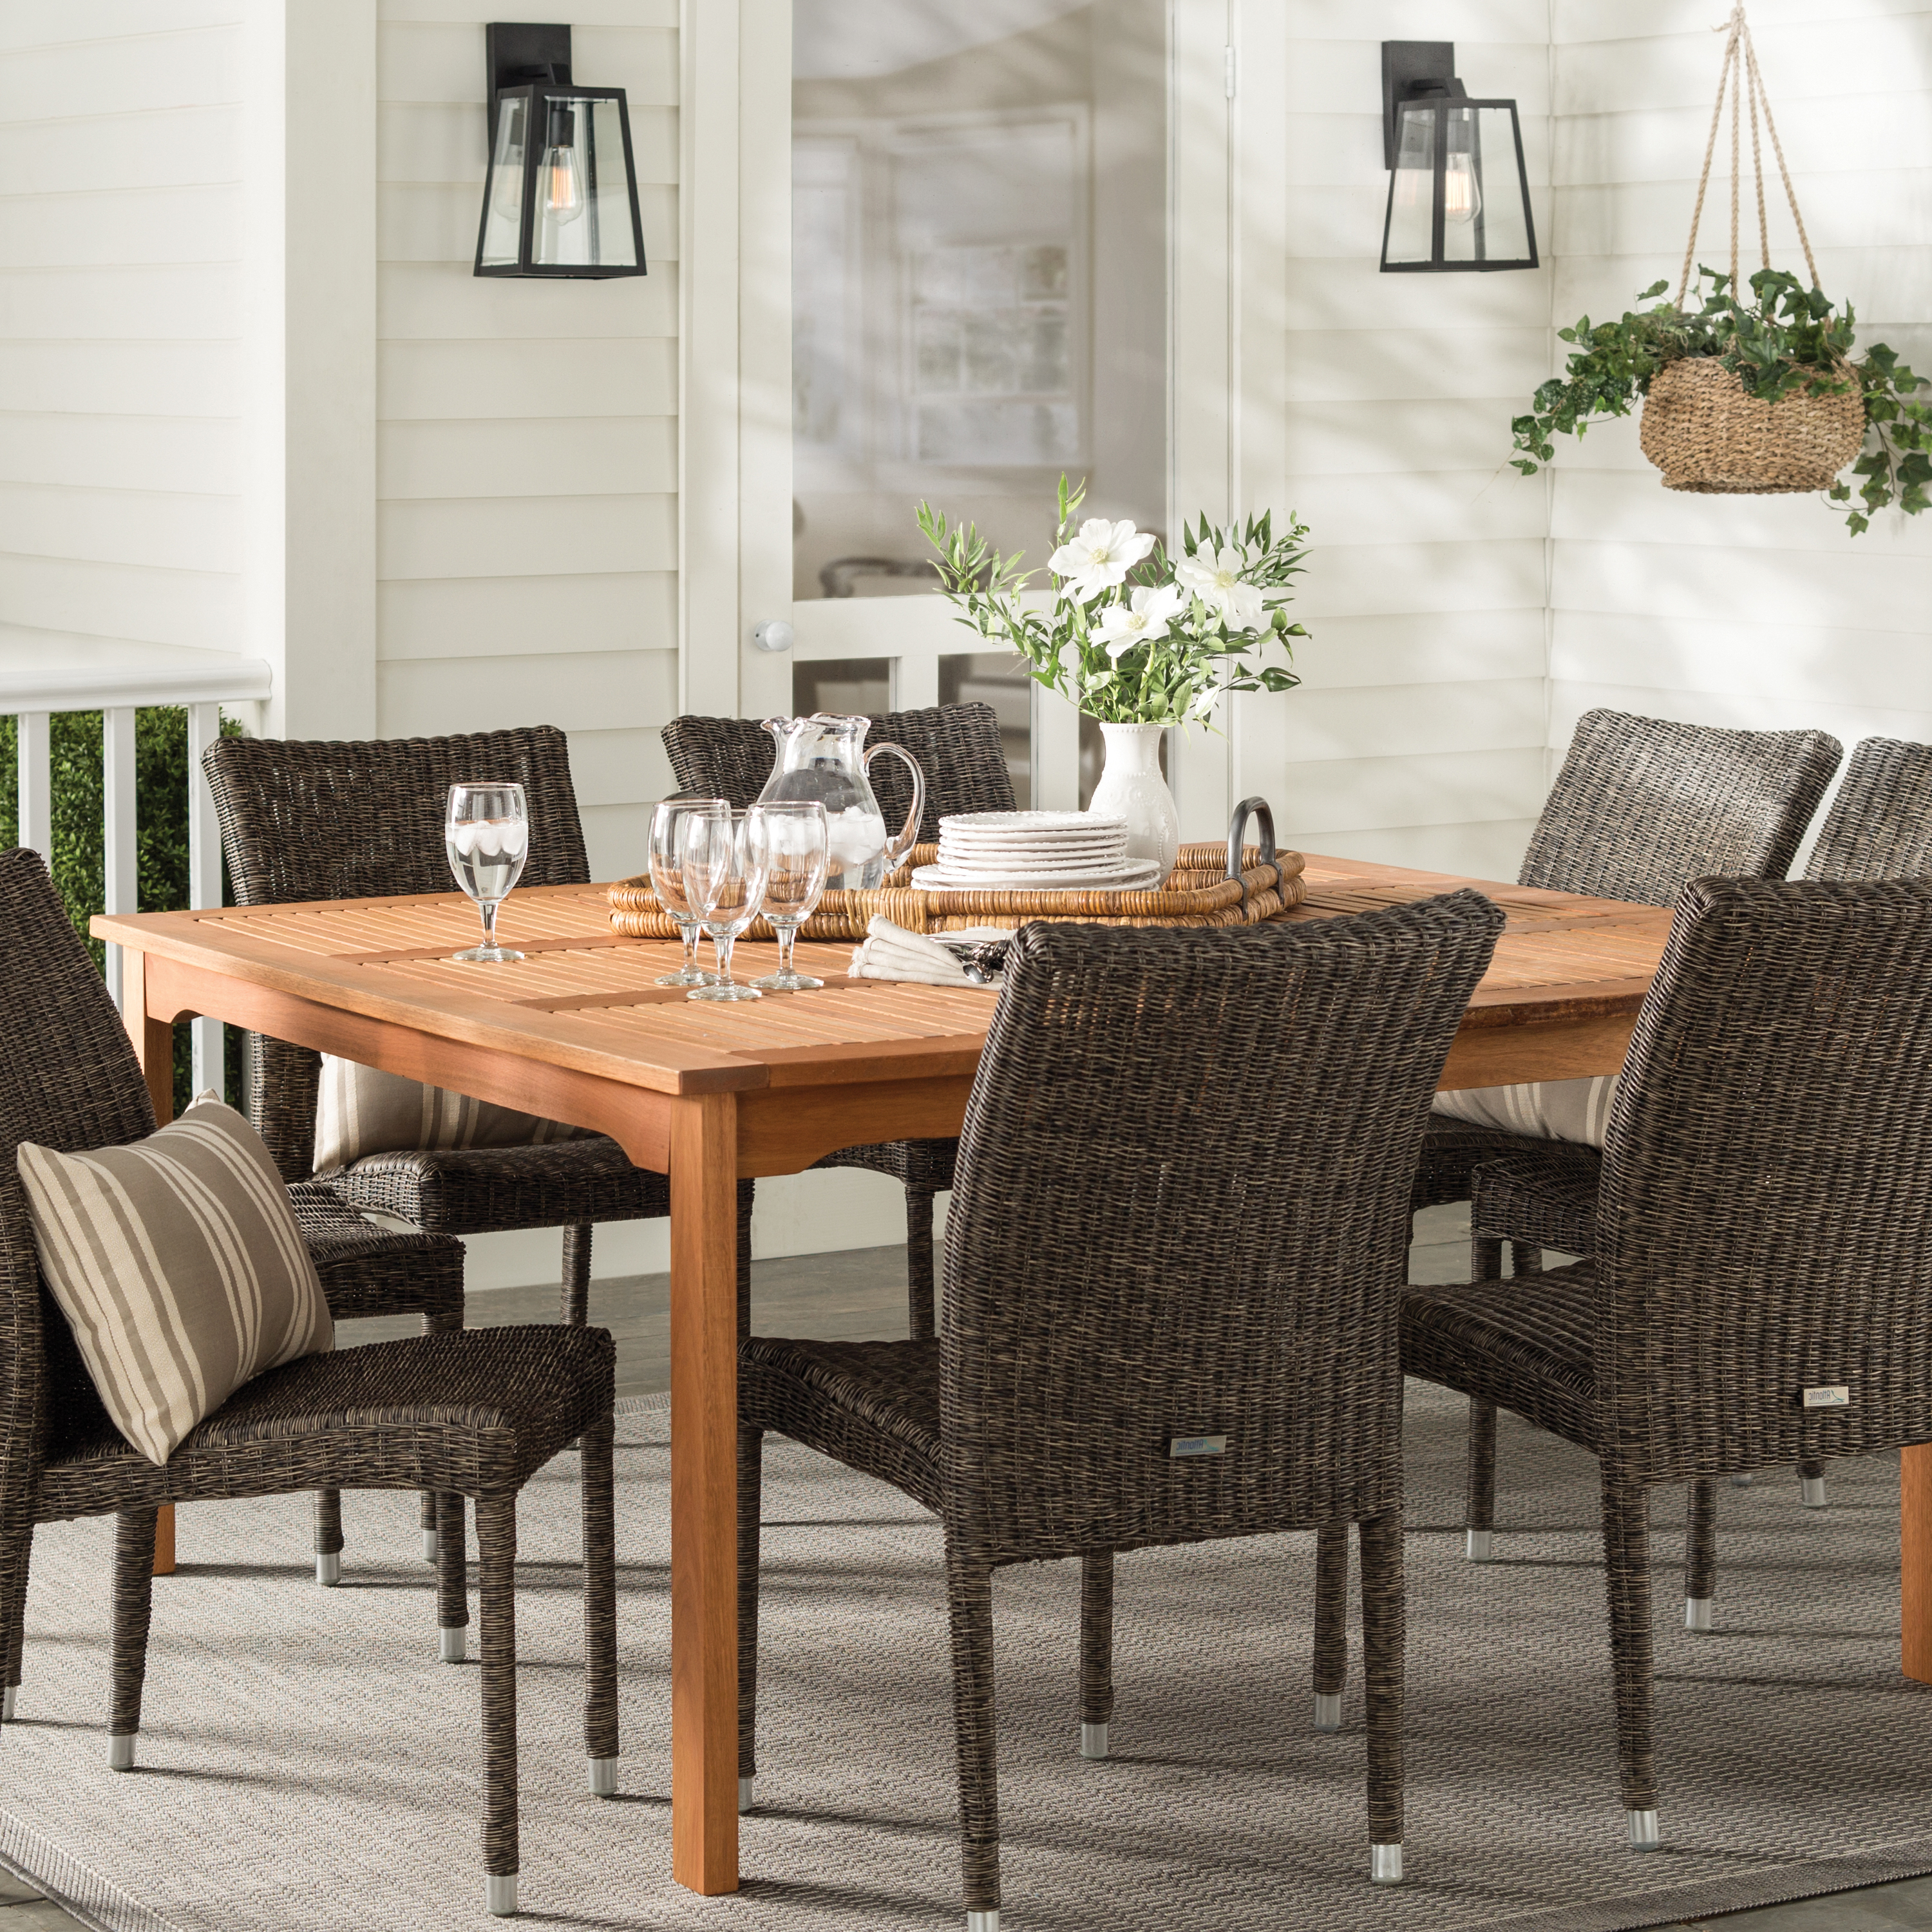 Best And Newest Farmhouse & Rustic Outdoor Tables (View 2 of 25)